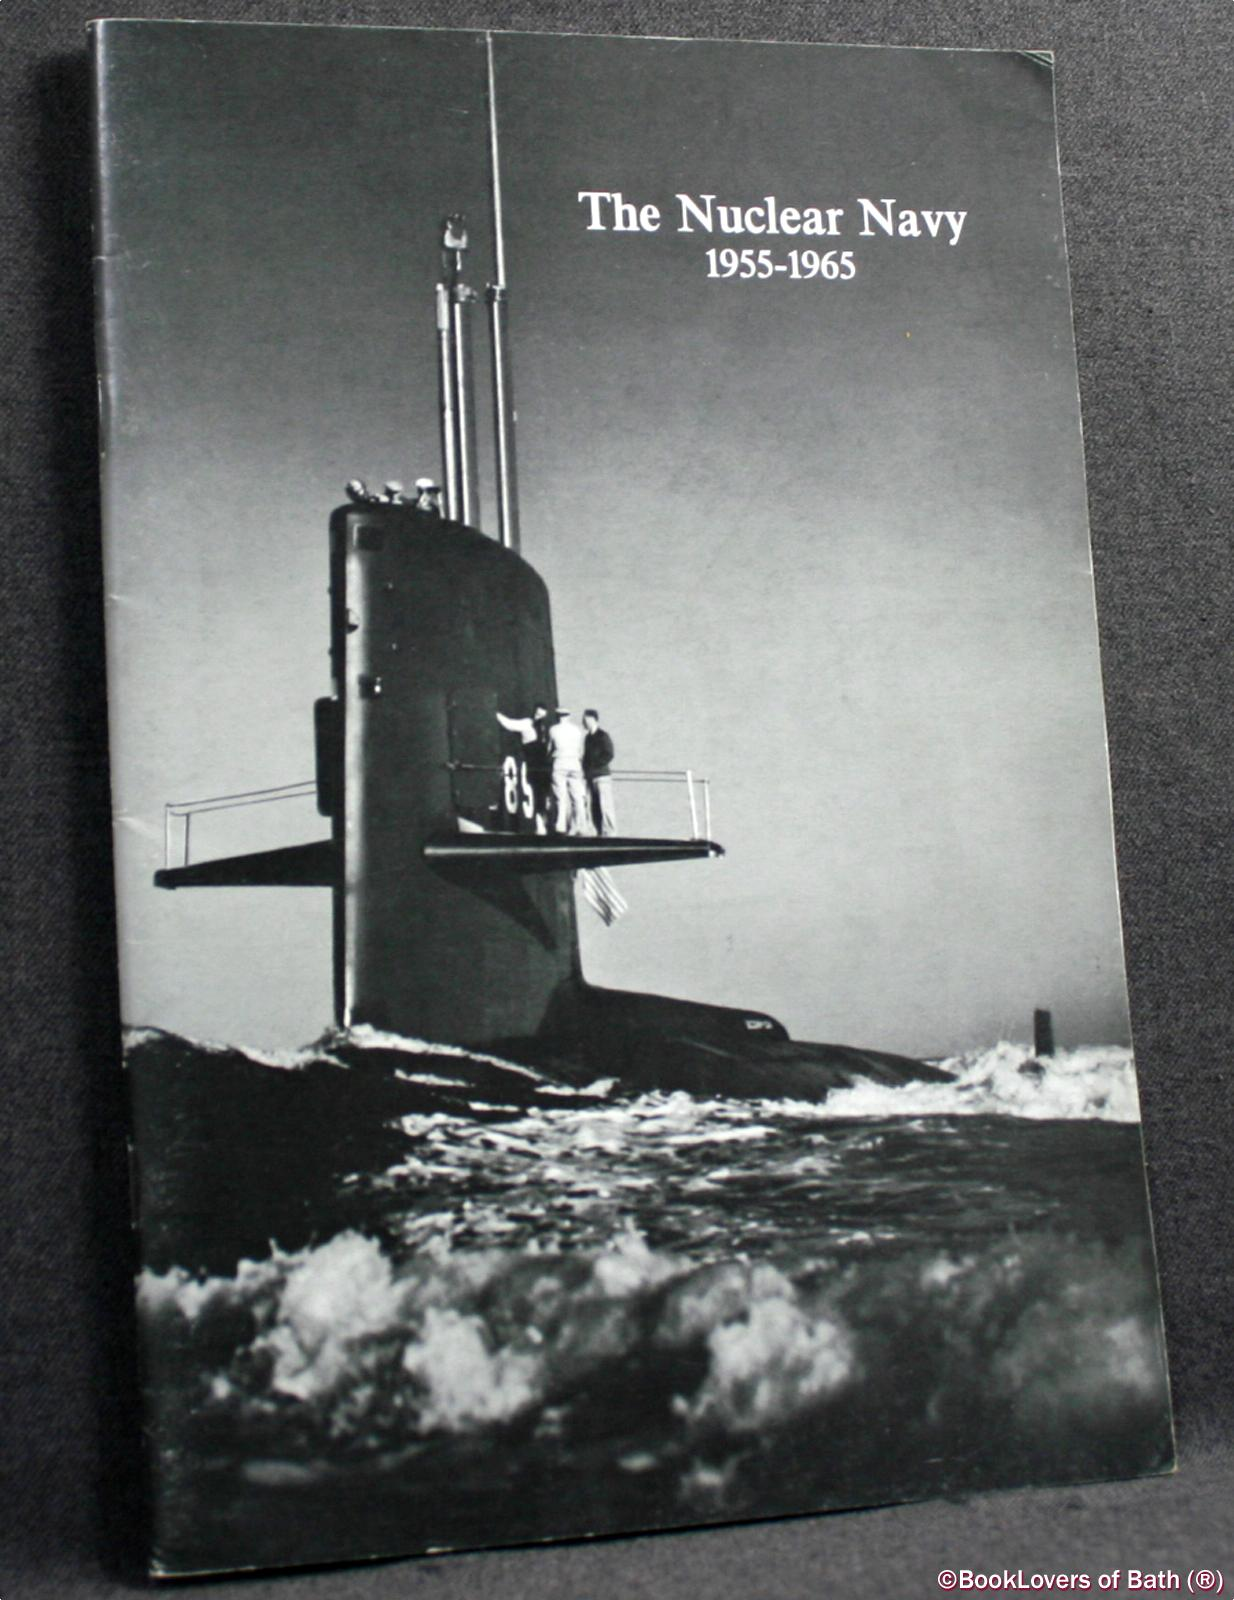 The Nuclear Navy 1955-1965 - Anon.